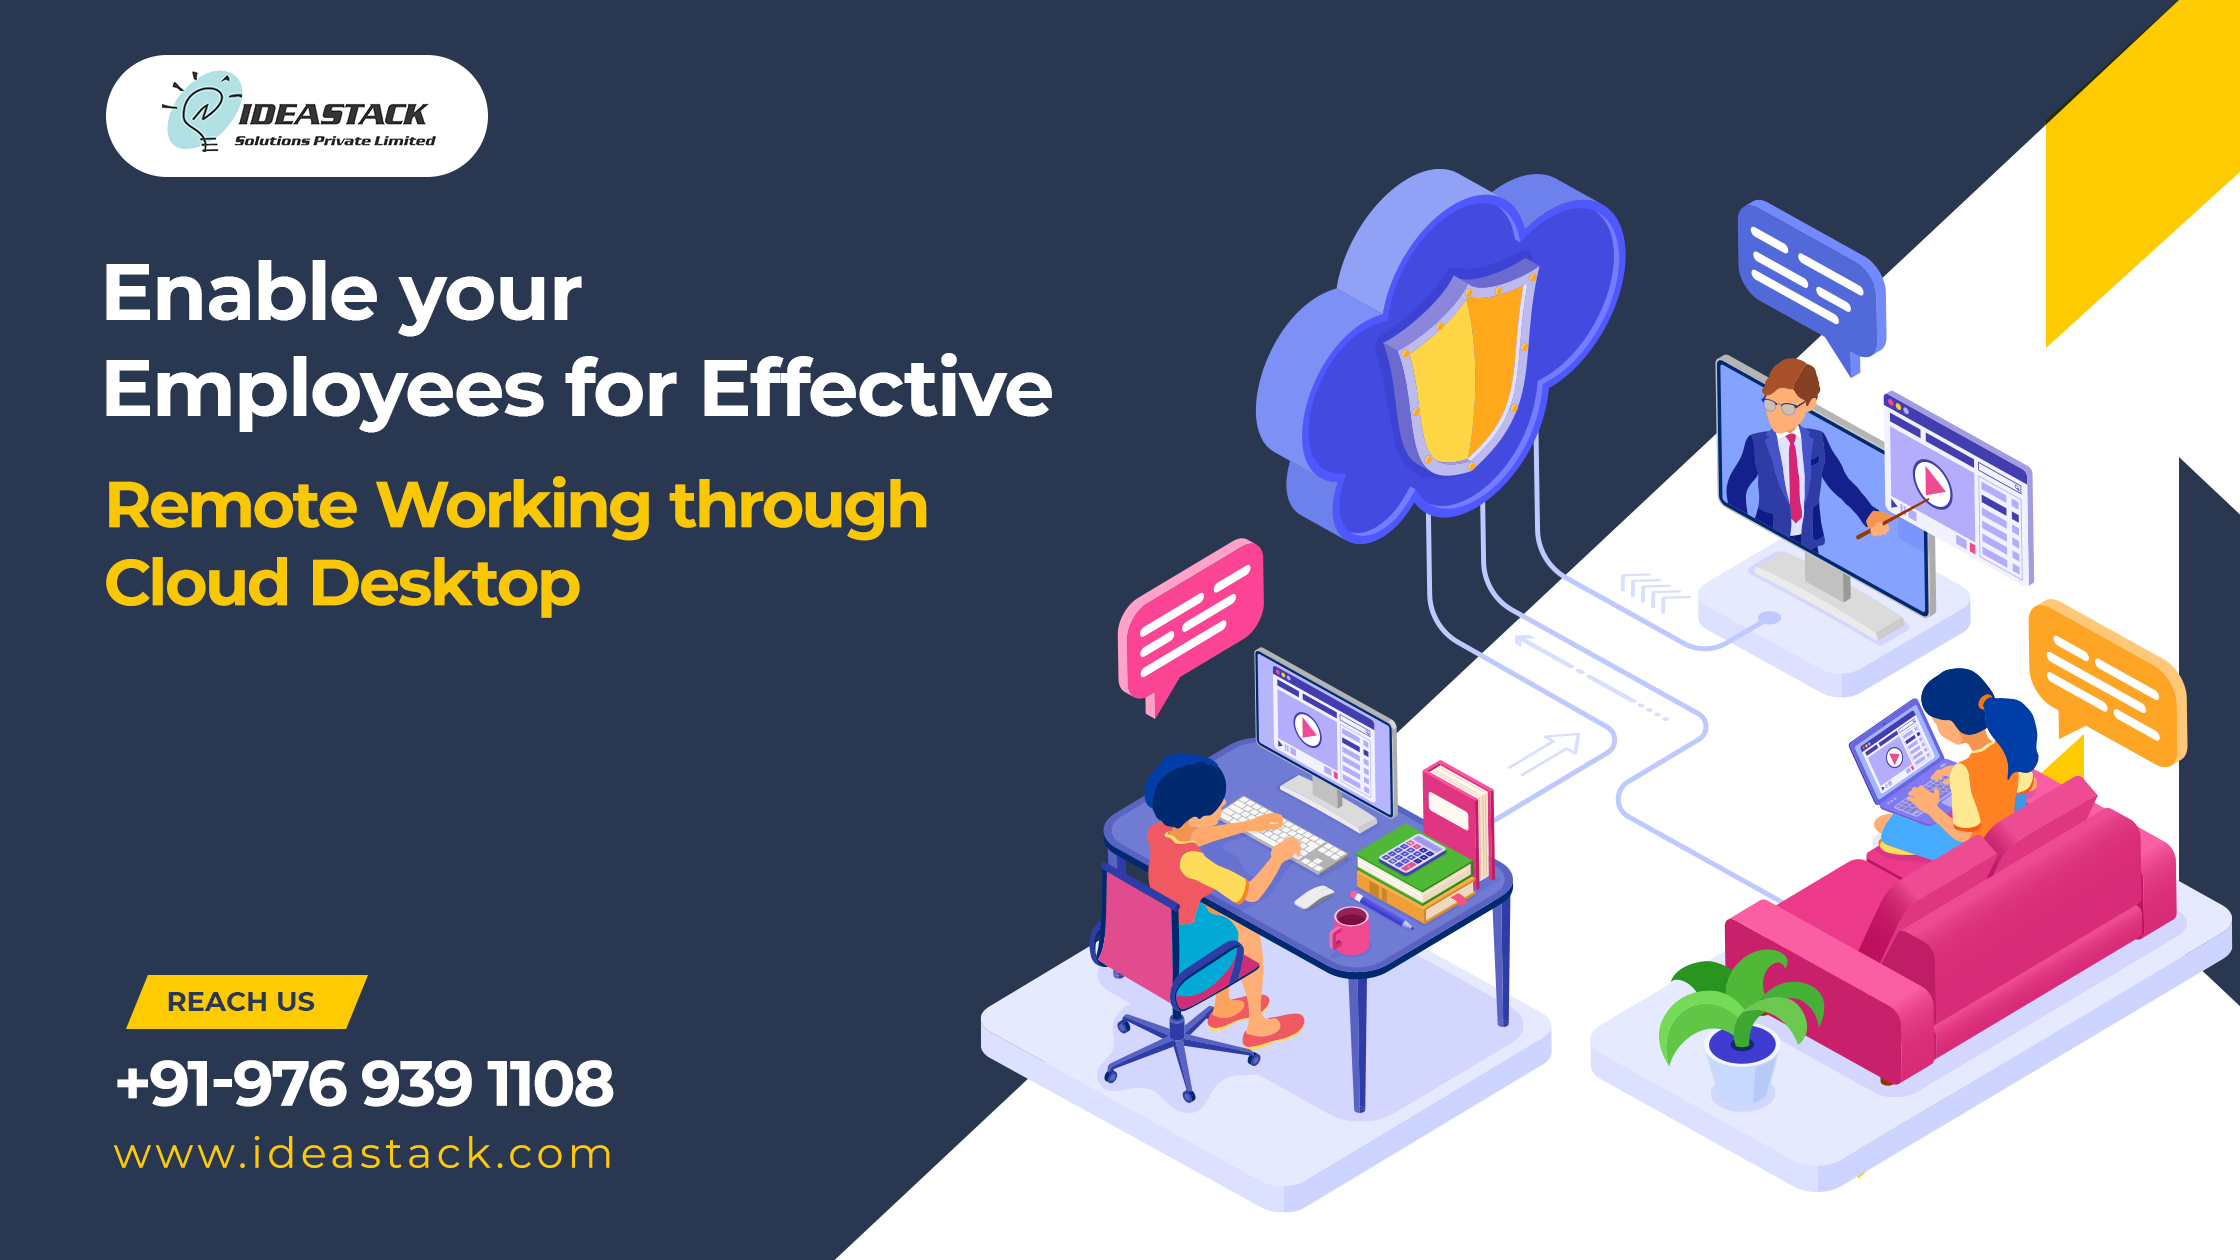 Enable Your Employees For Effective Remote Working Through Cloud Desktop